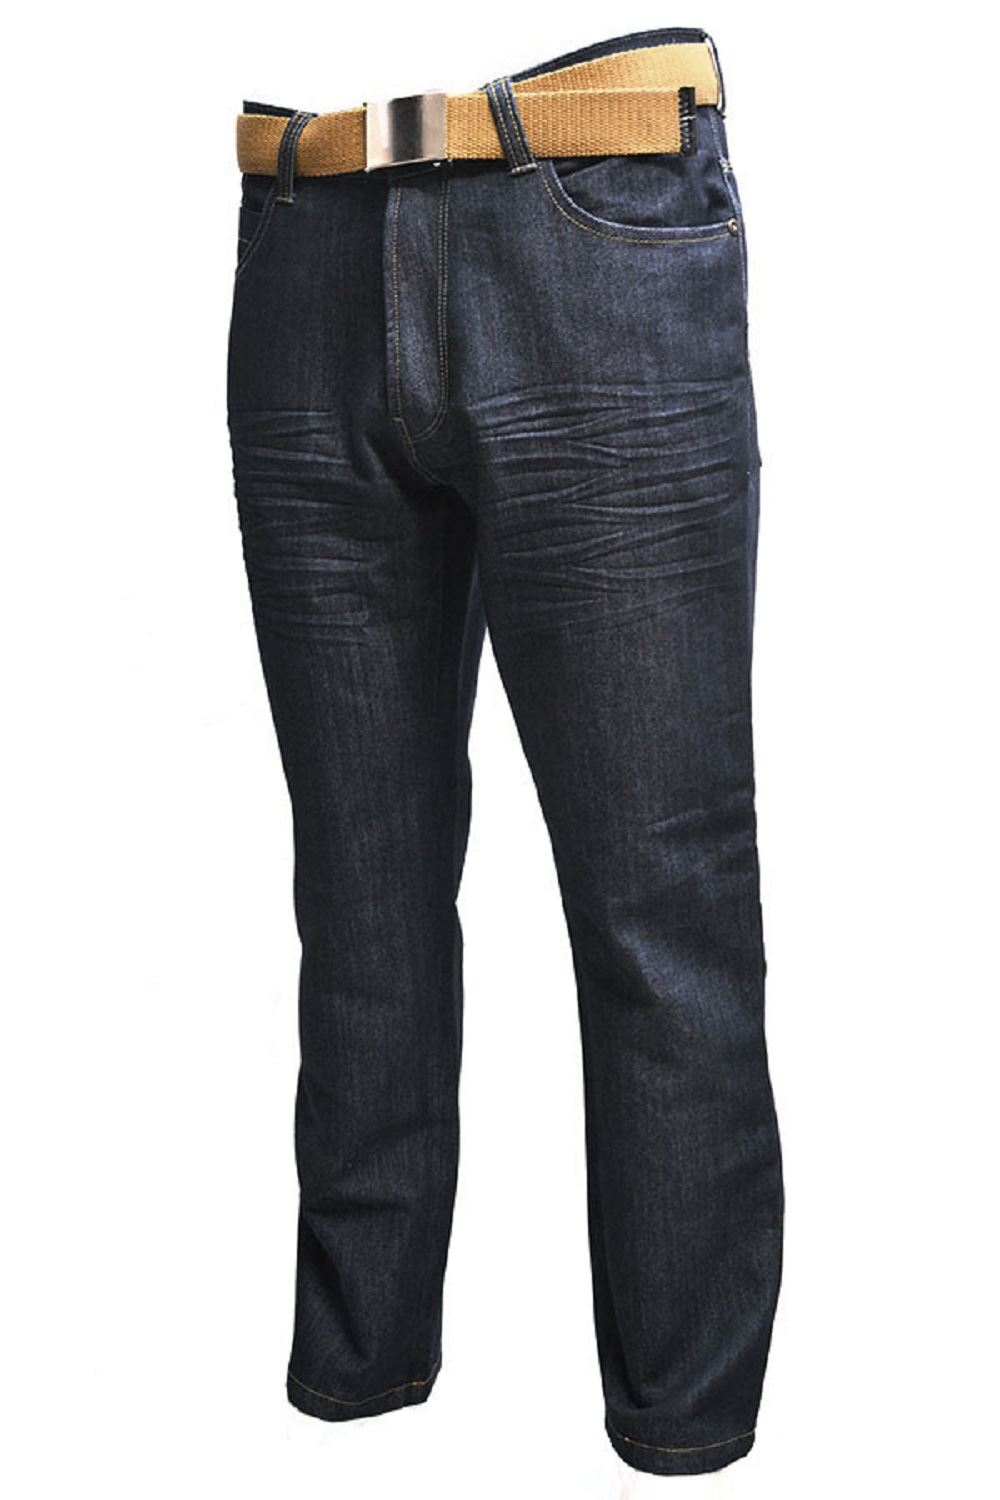 Mens-Classic-Fit-Black-Indigo-Jeans-Kori-By-Creon-Previs thumbnail 18